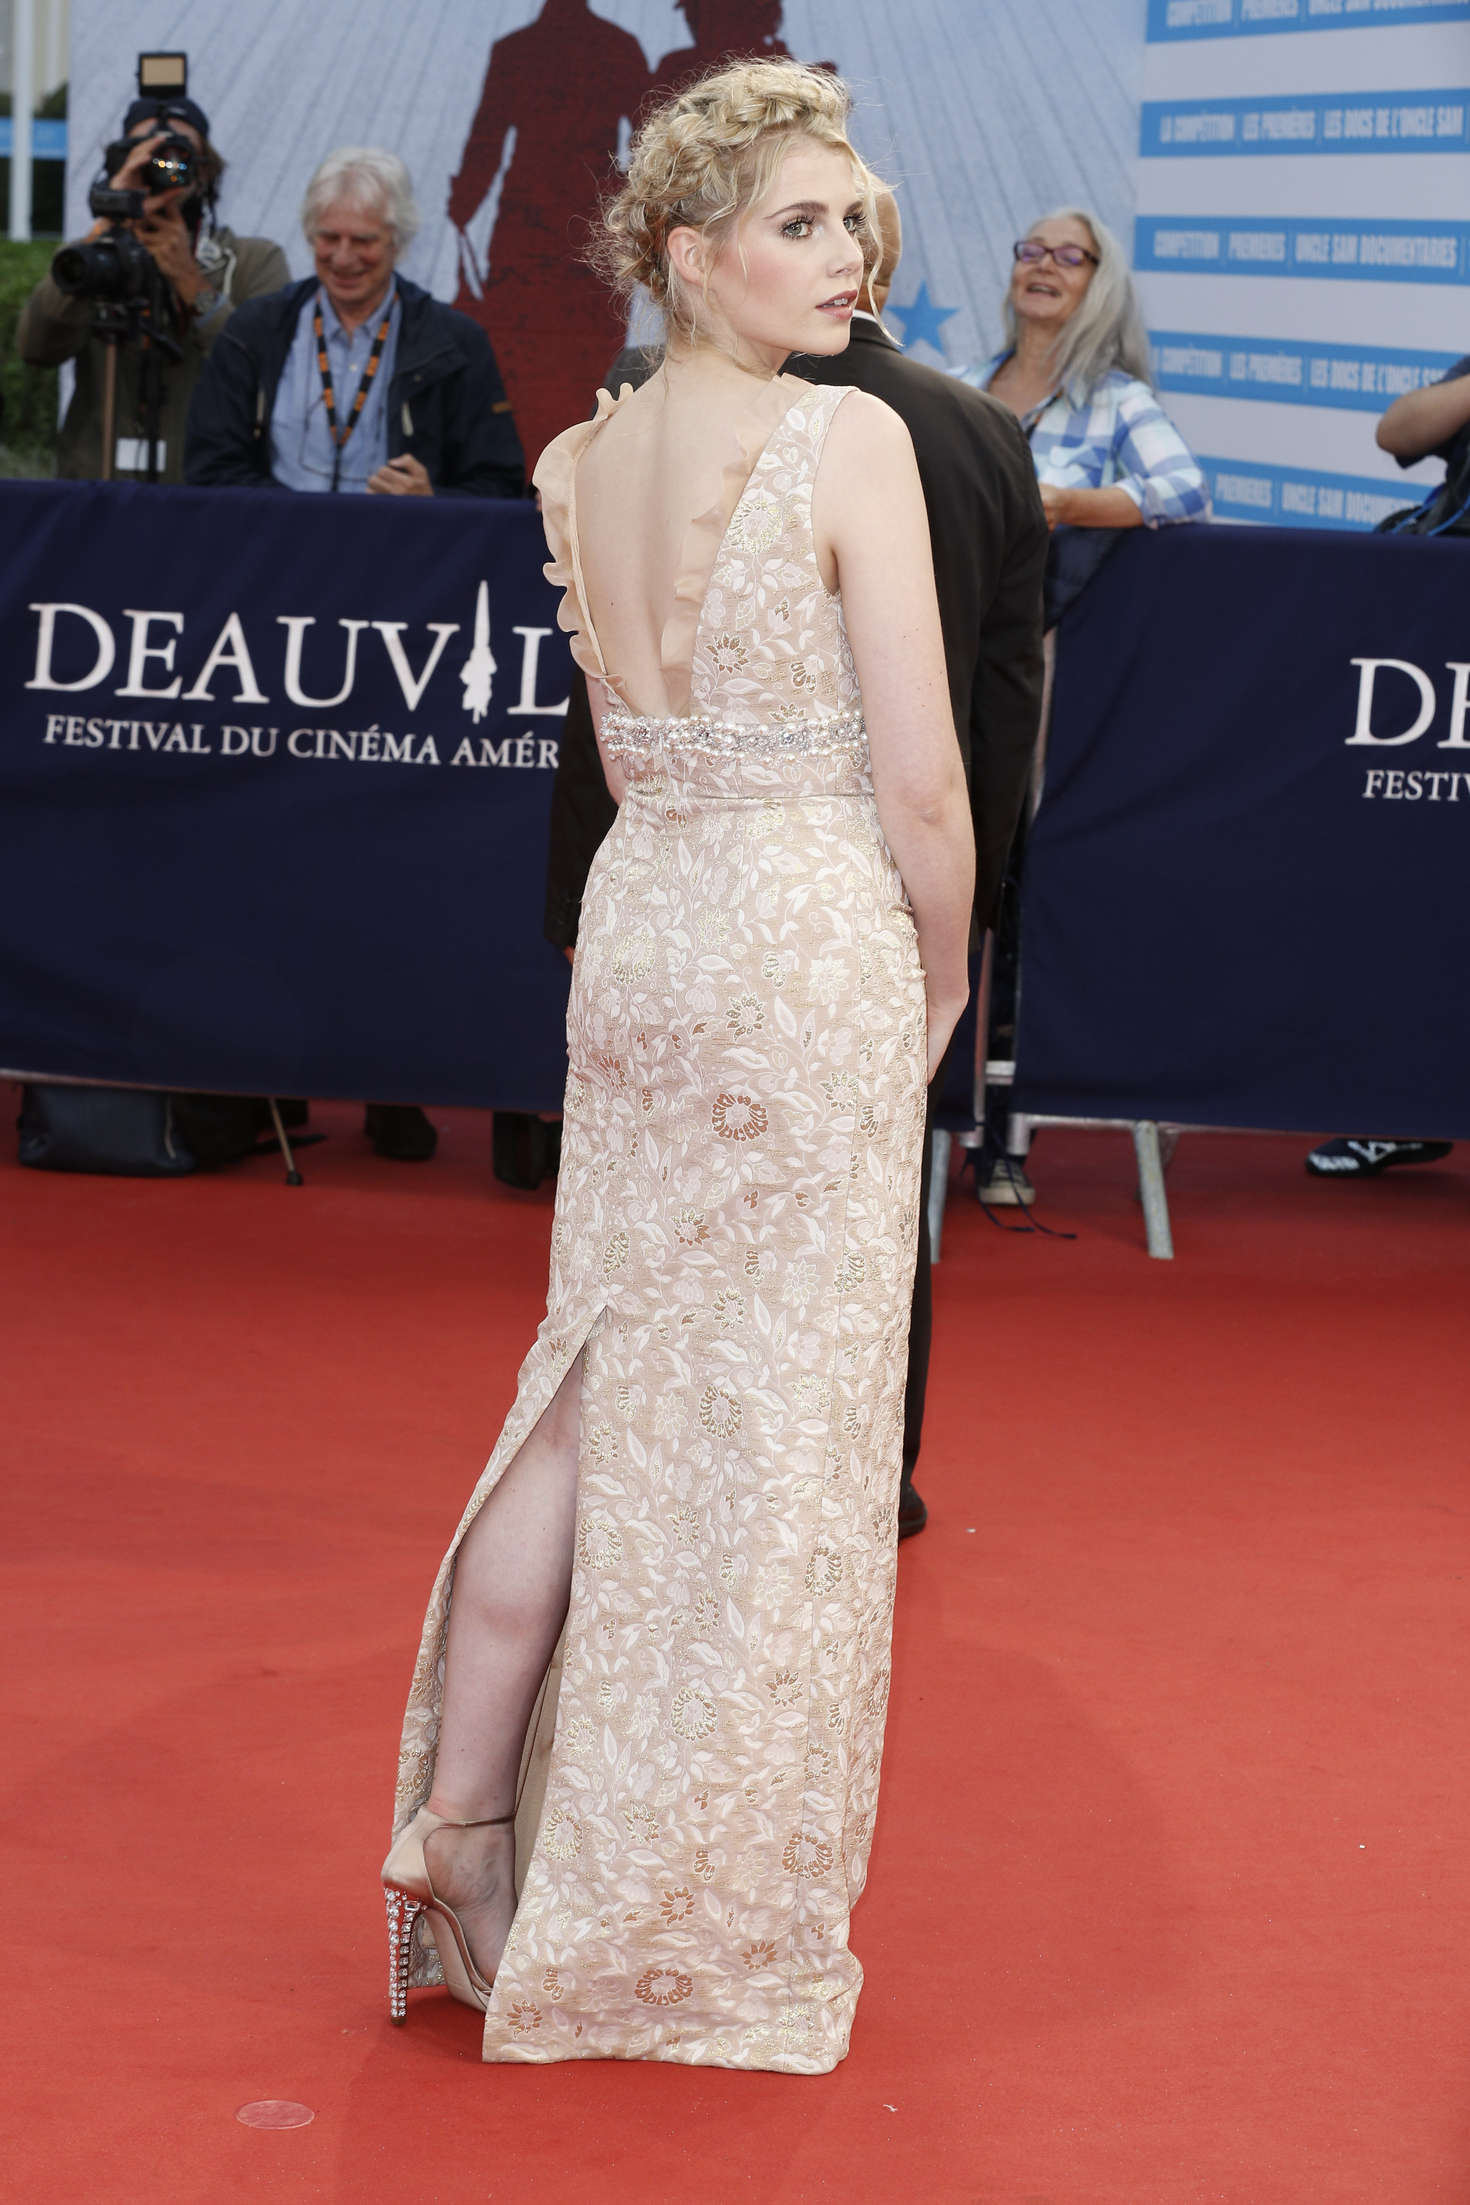 Lucy Boynton In Dubious Battle Premiere At 42nd Deauville